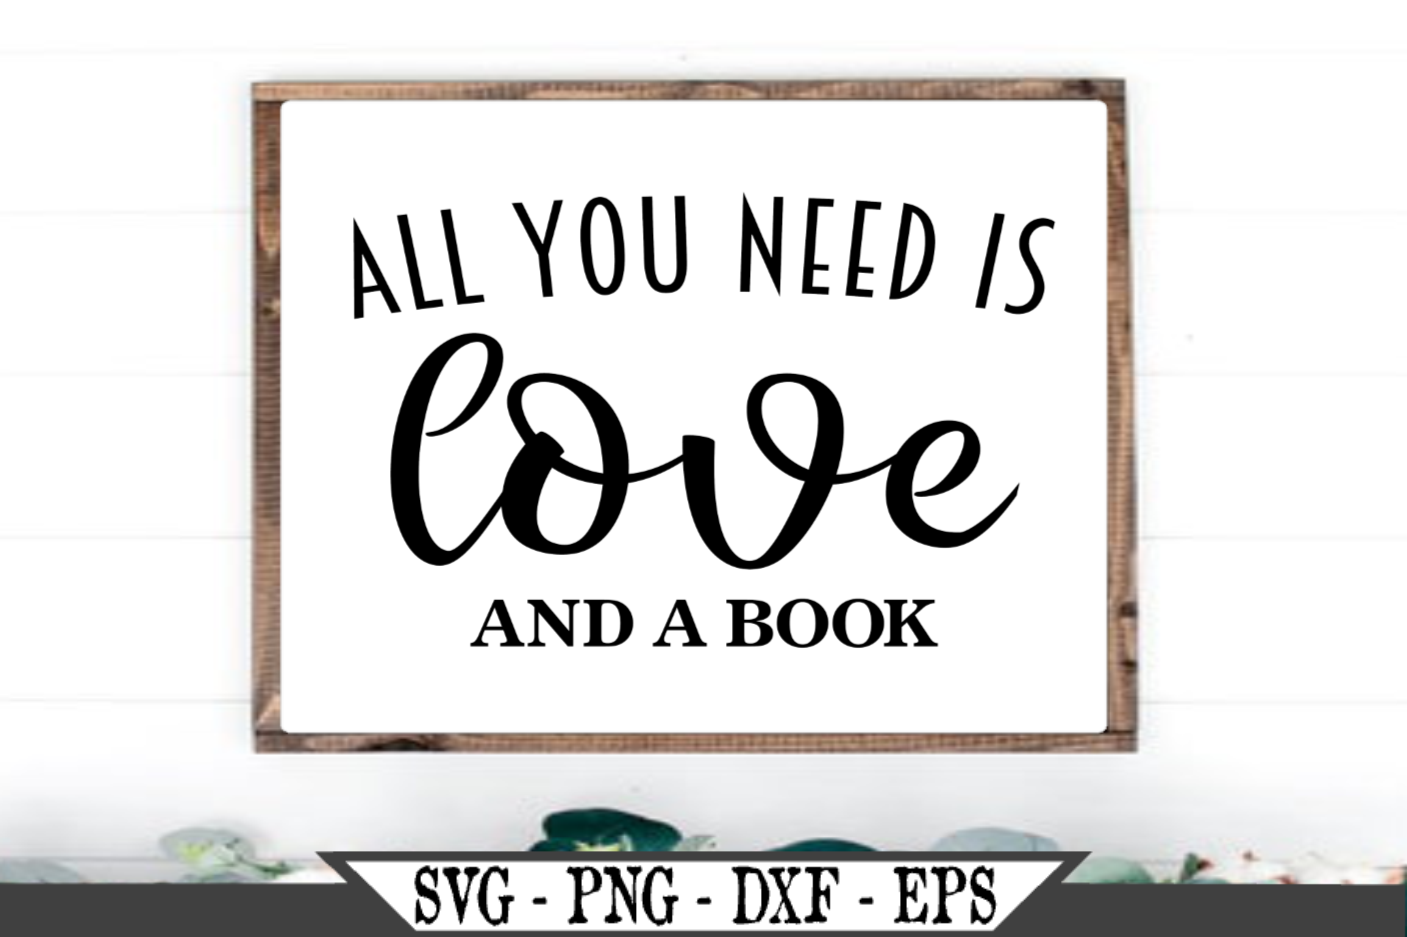 All You Need Is Love And A Book SVG example image 1